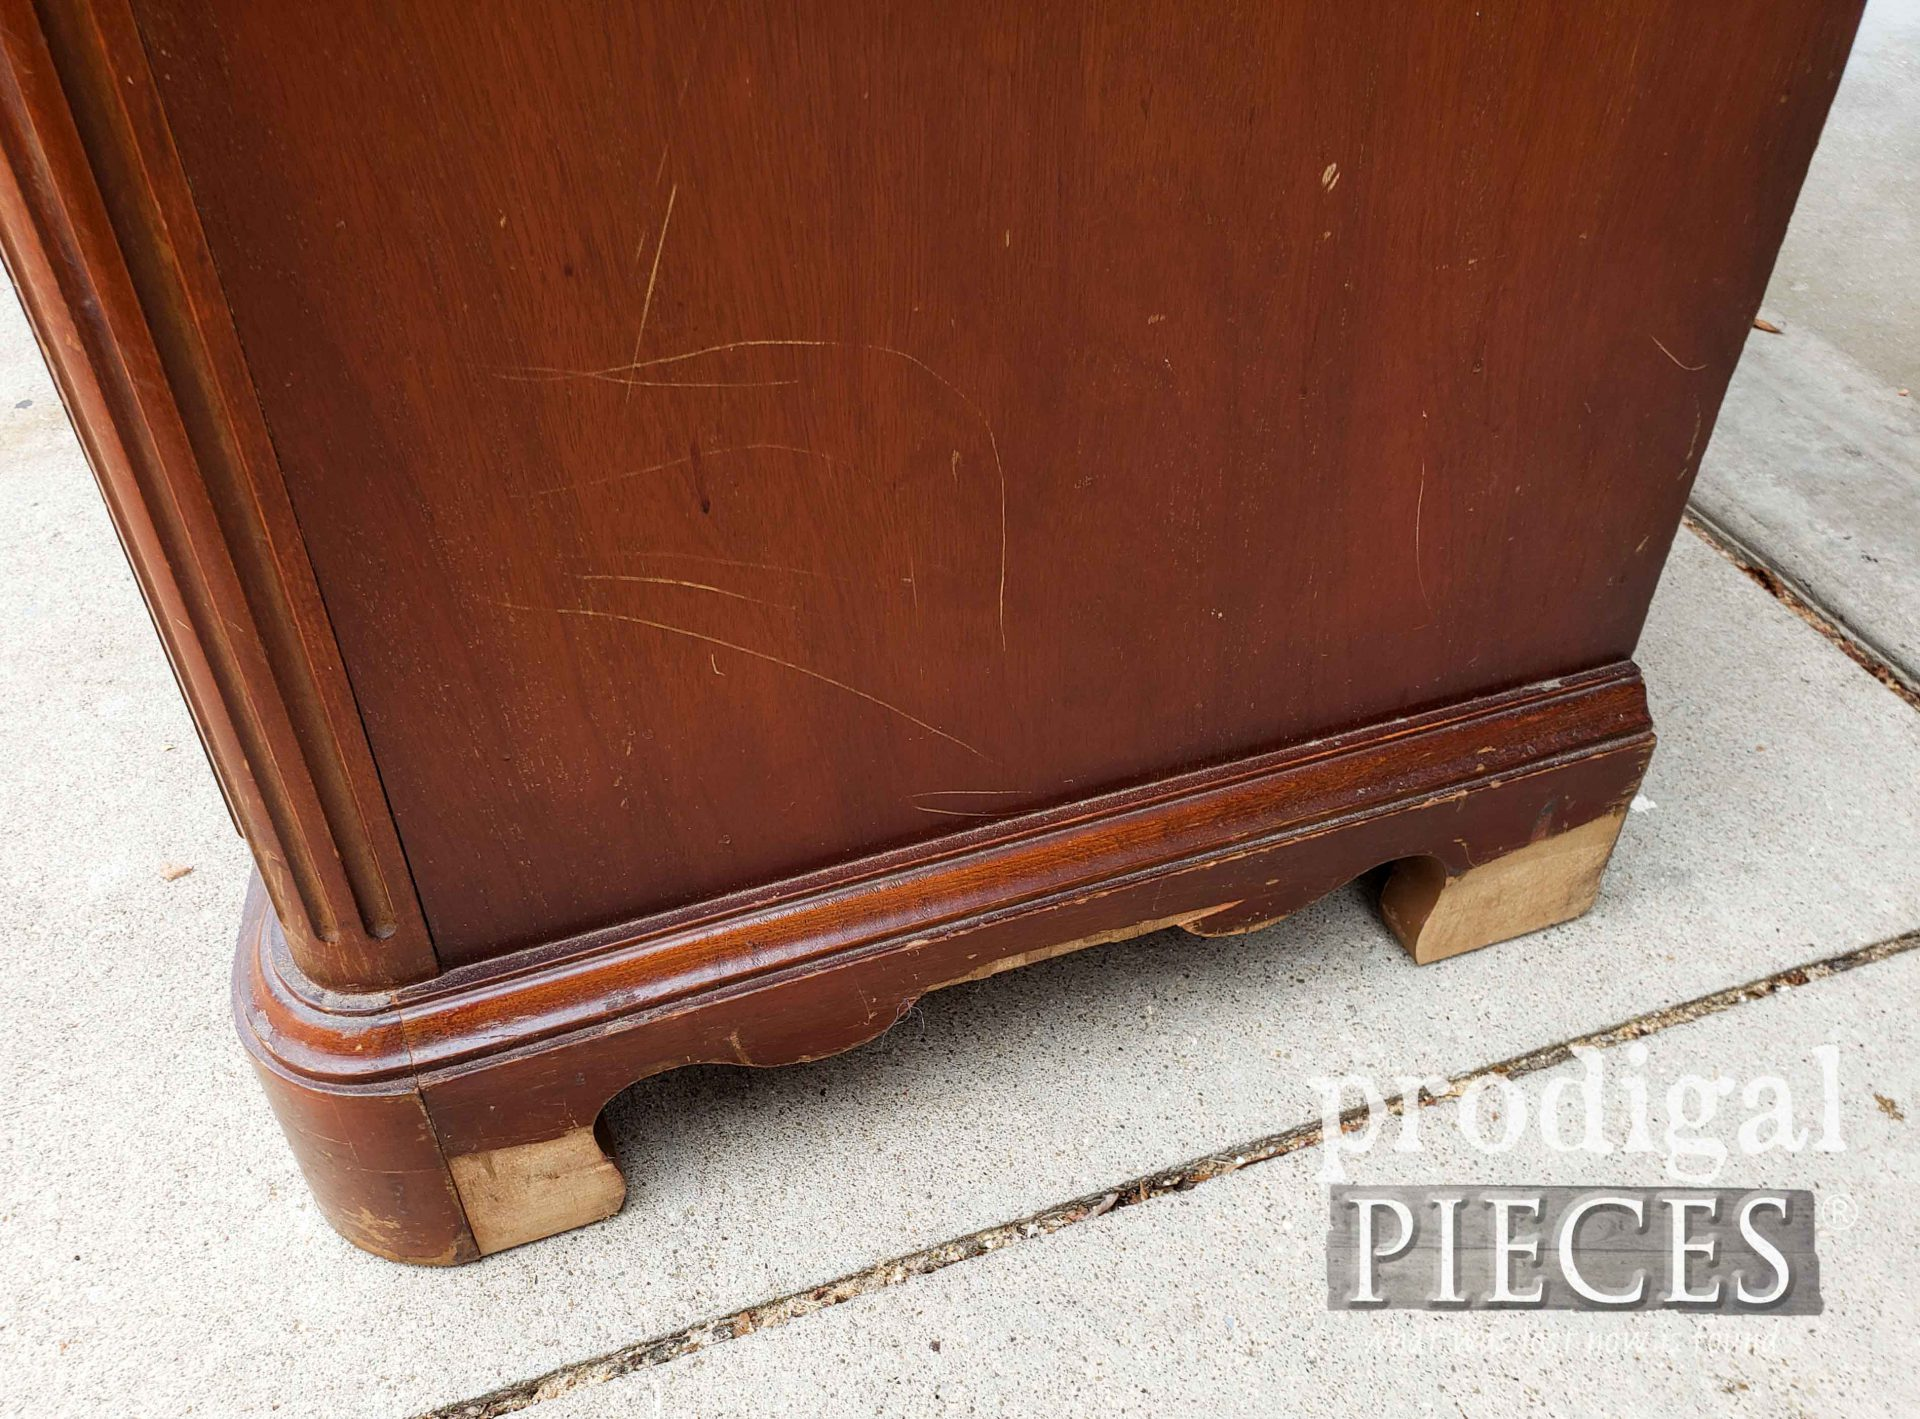 Damaged Veneer on Right Side of Serpentine Dresser | prodigalpieces.com